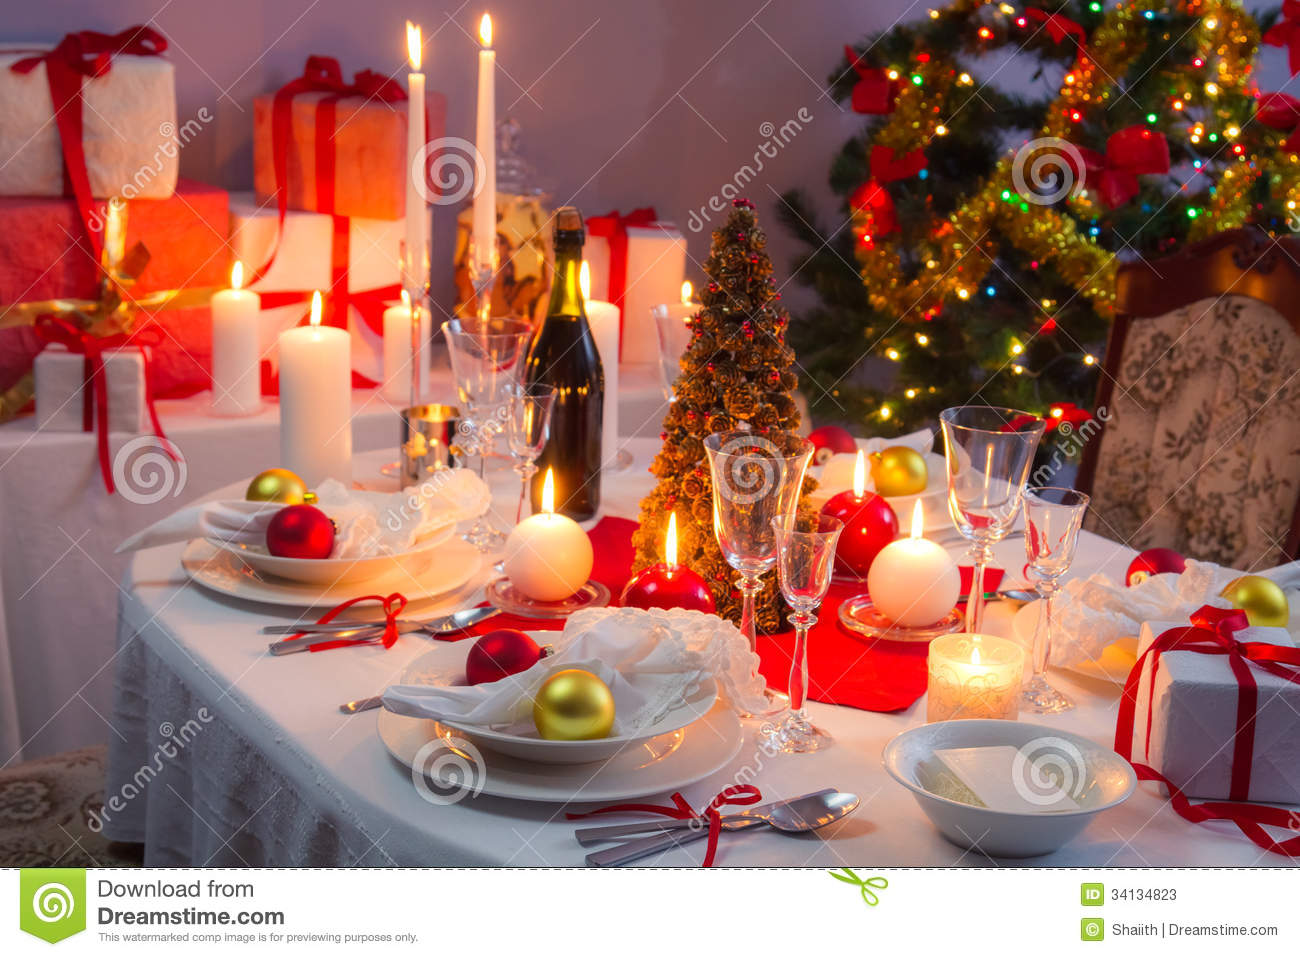 8 ways with christmas place settings 1